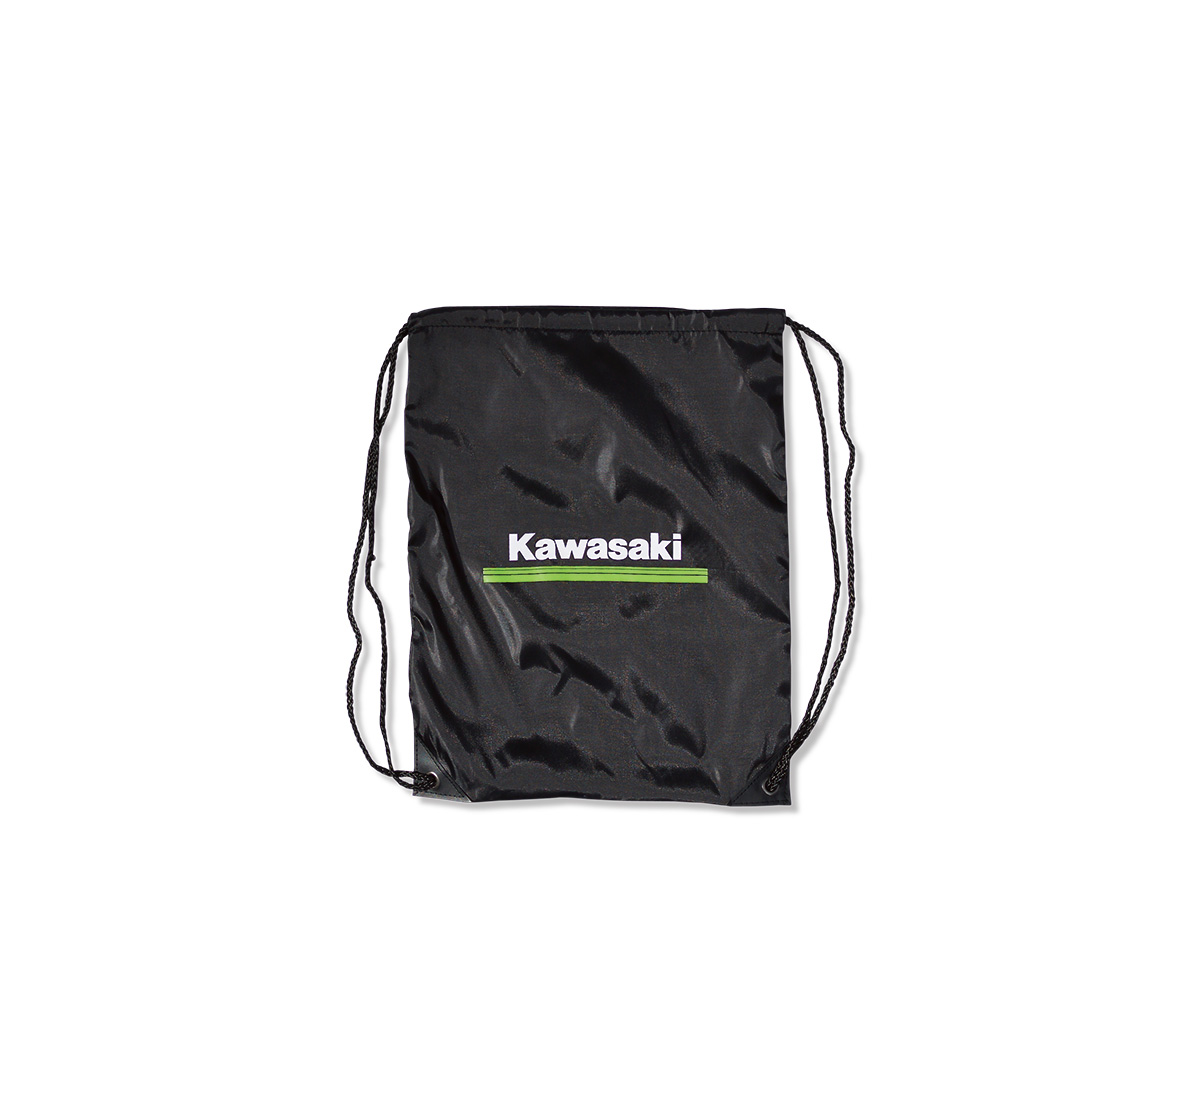 Kawasaki 3 Green Lines Clinch Drawstring Bag